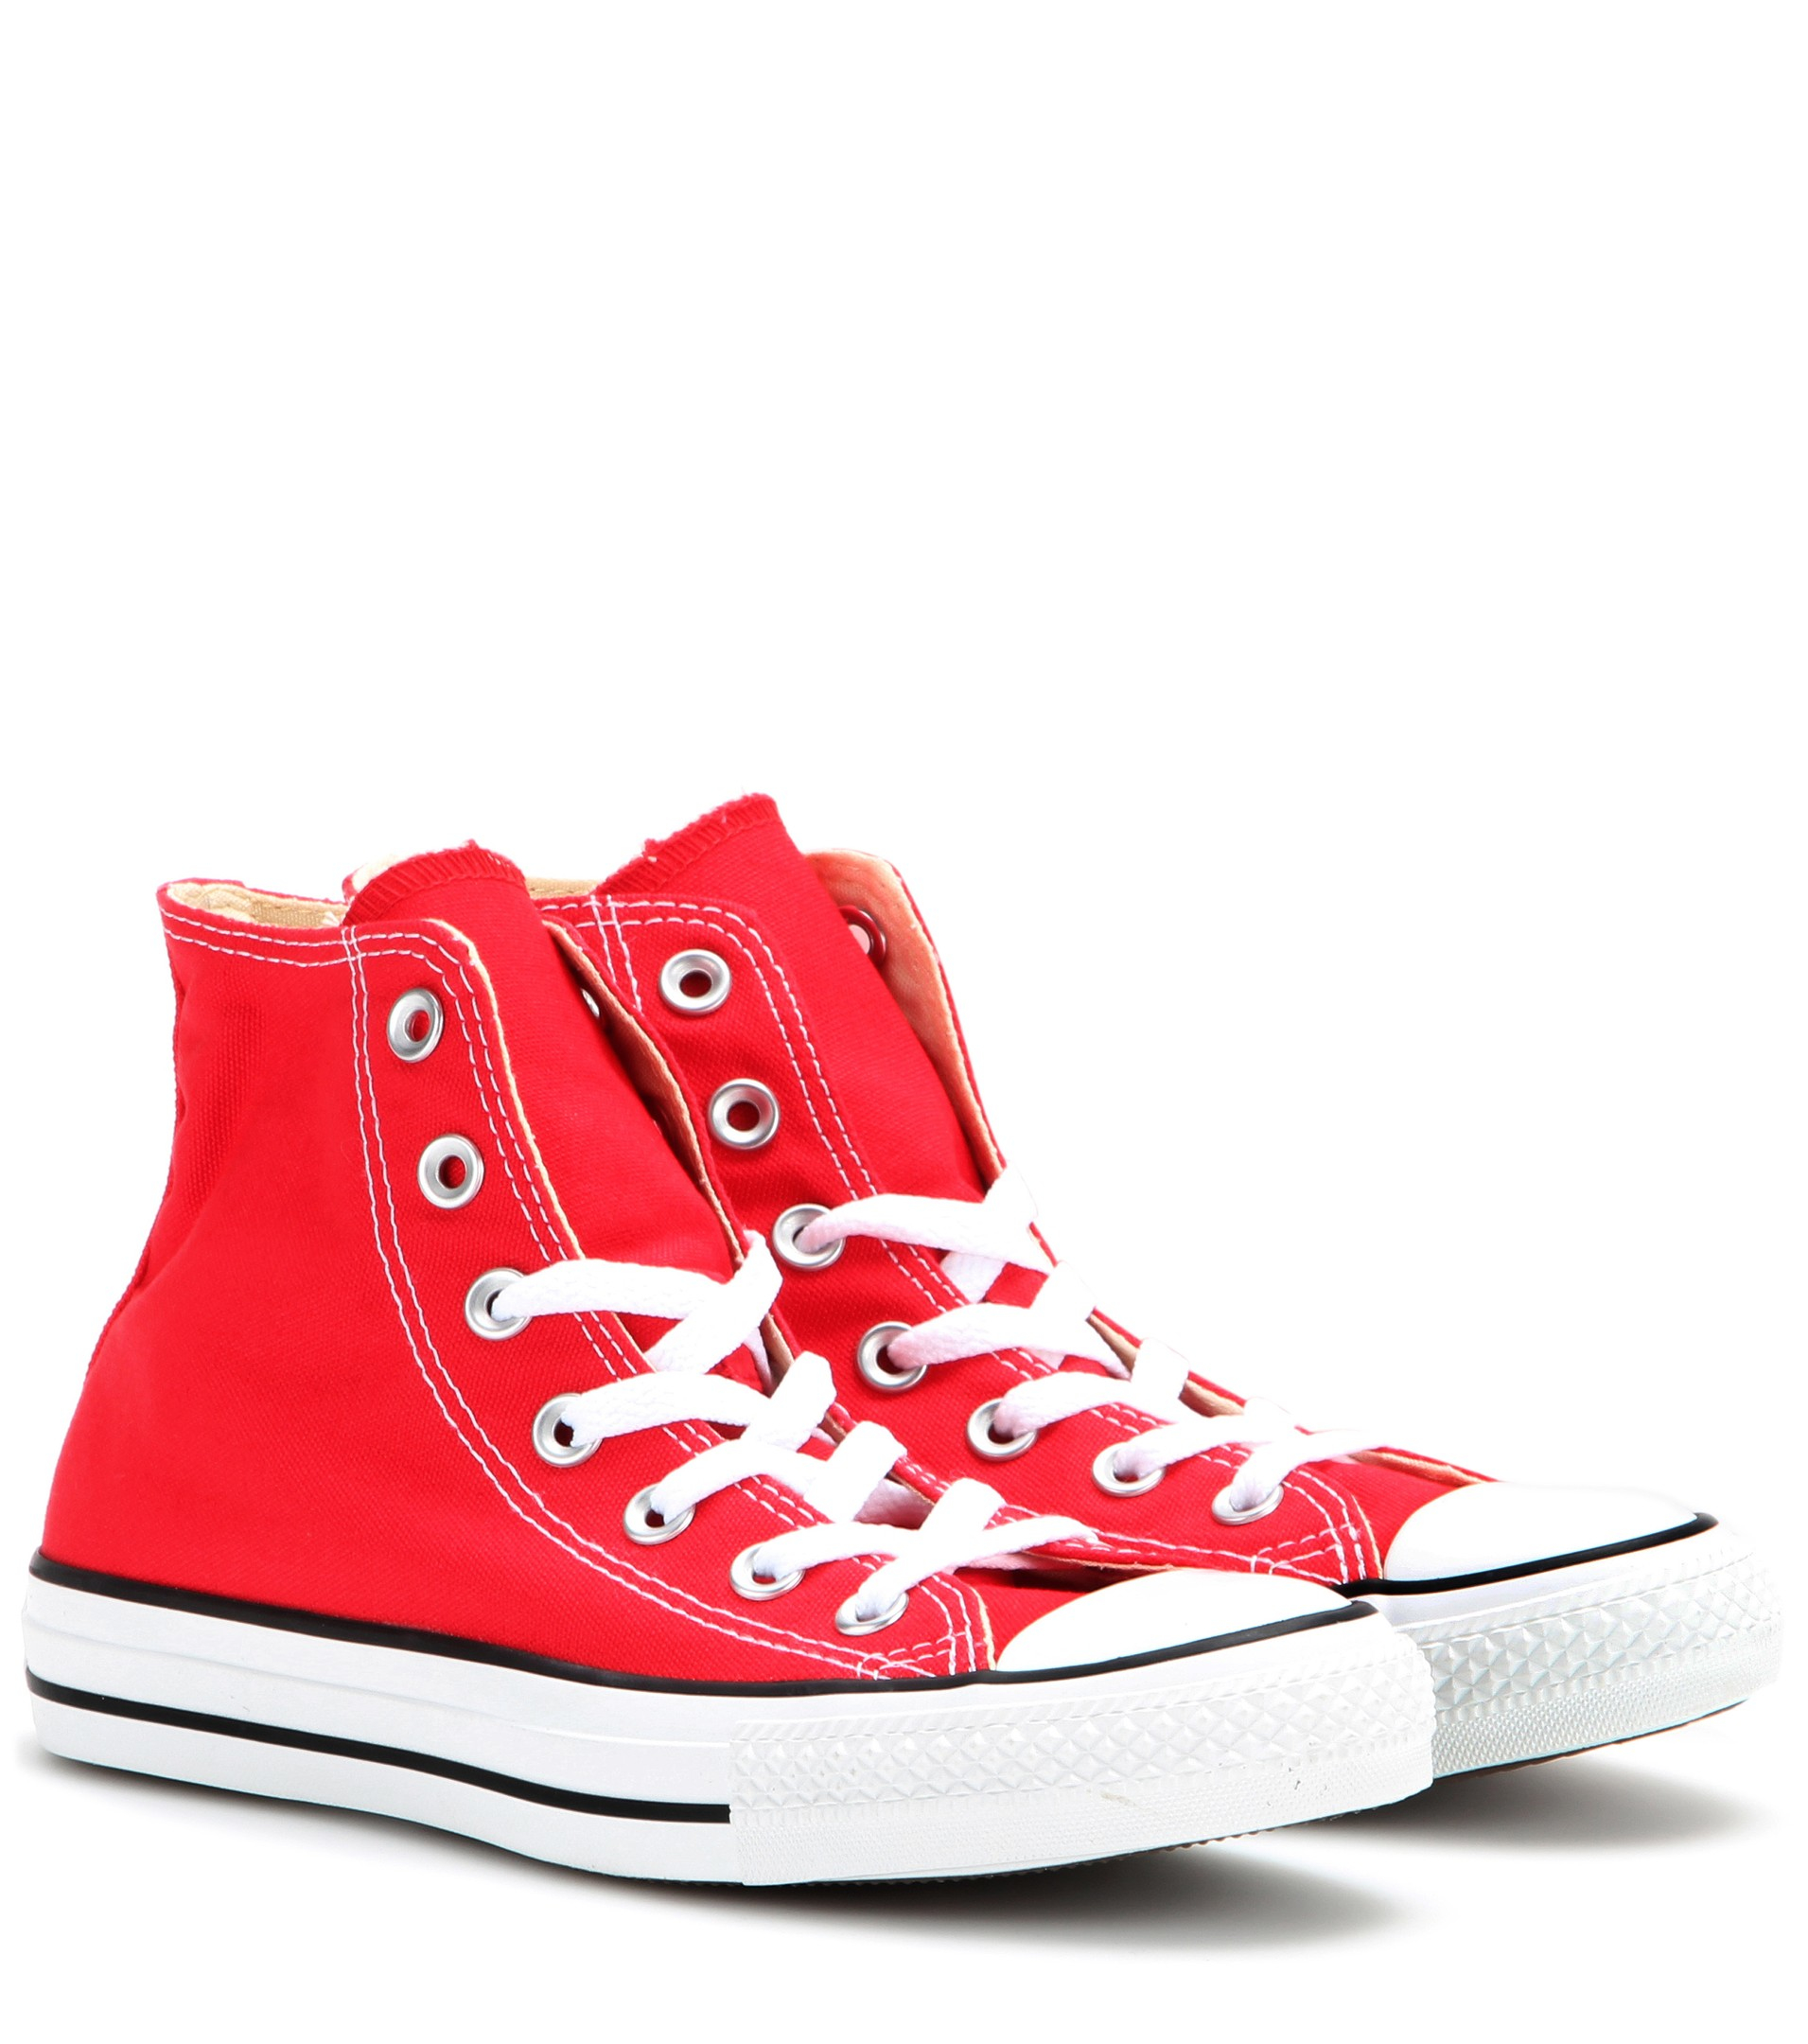 Lyst - Converse Chuck Taylor All Star High-top Sneakers in Red